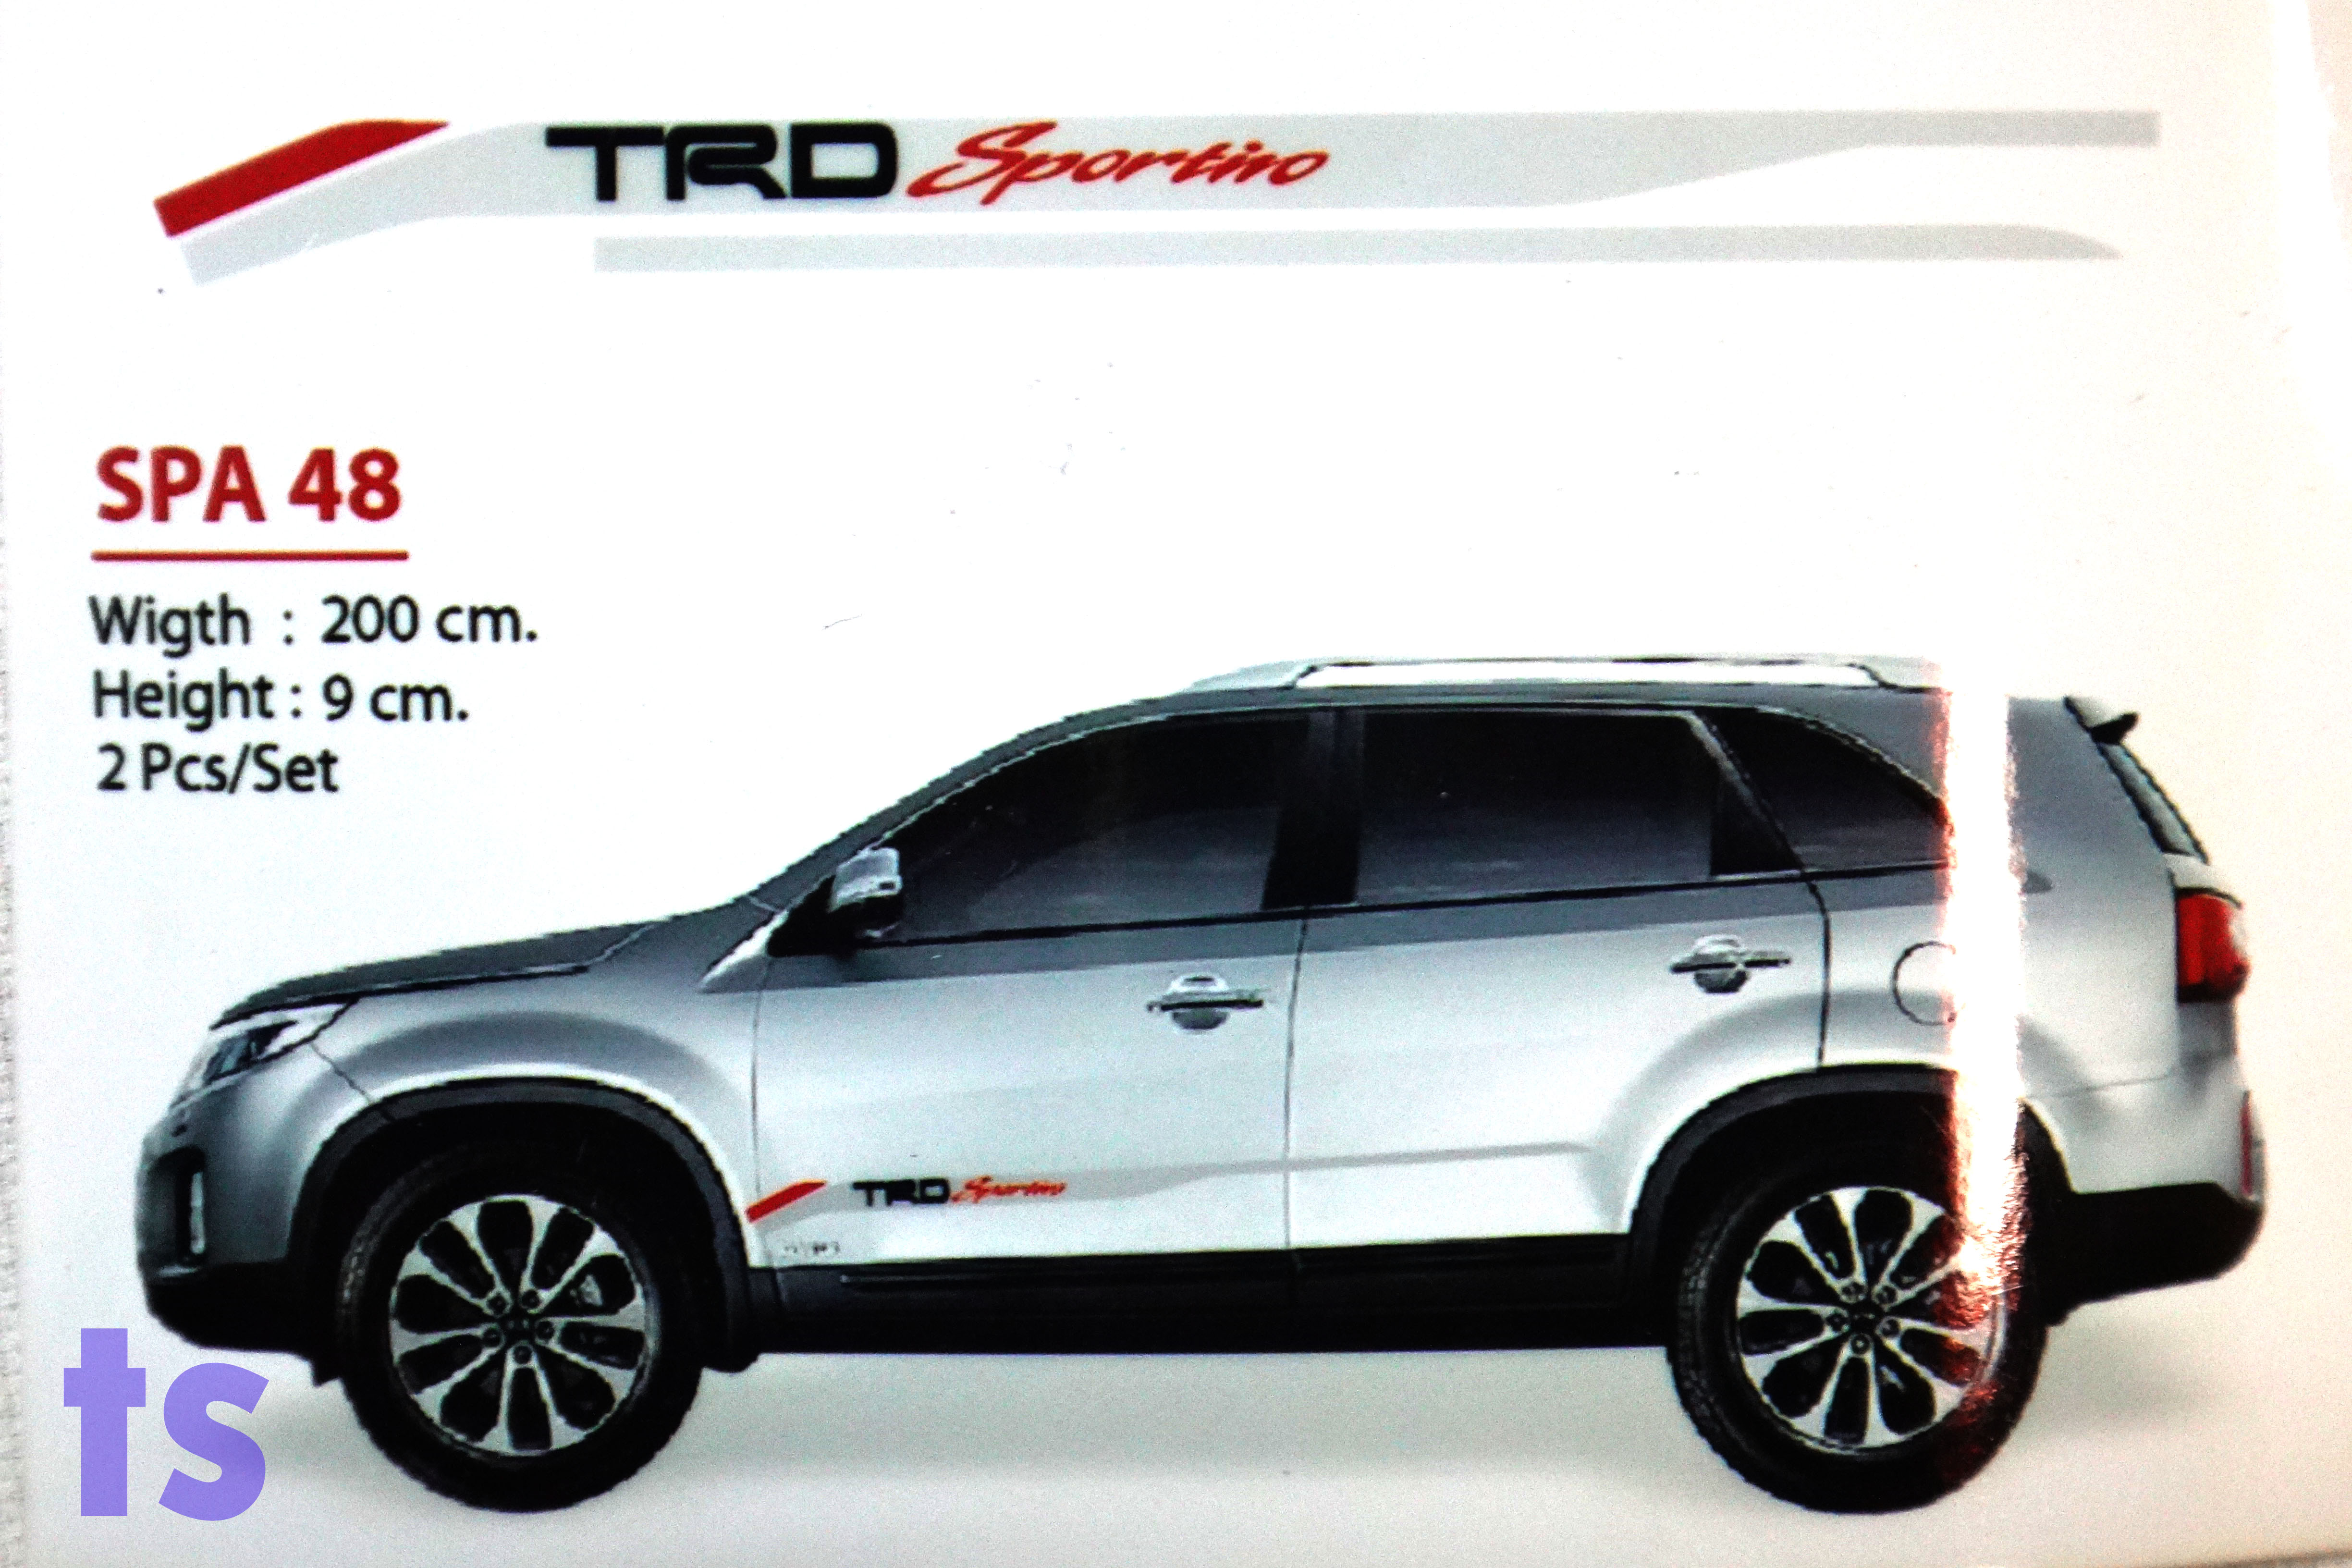 Set Side Door Grey Sticker Quot Trd Sportivo Quot Decal For Toyota